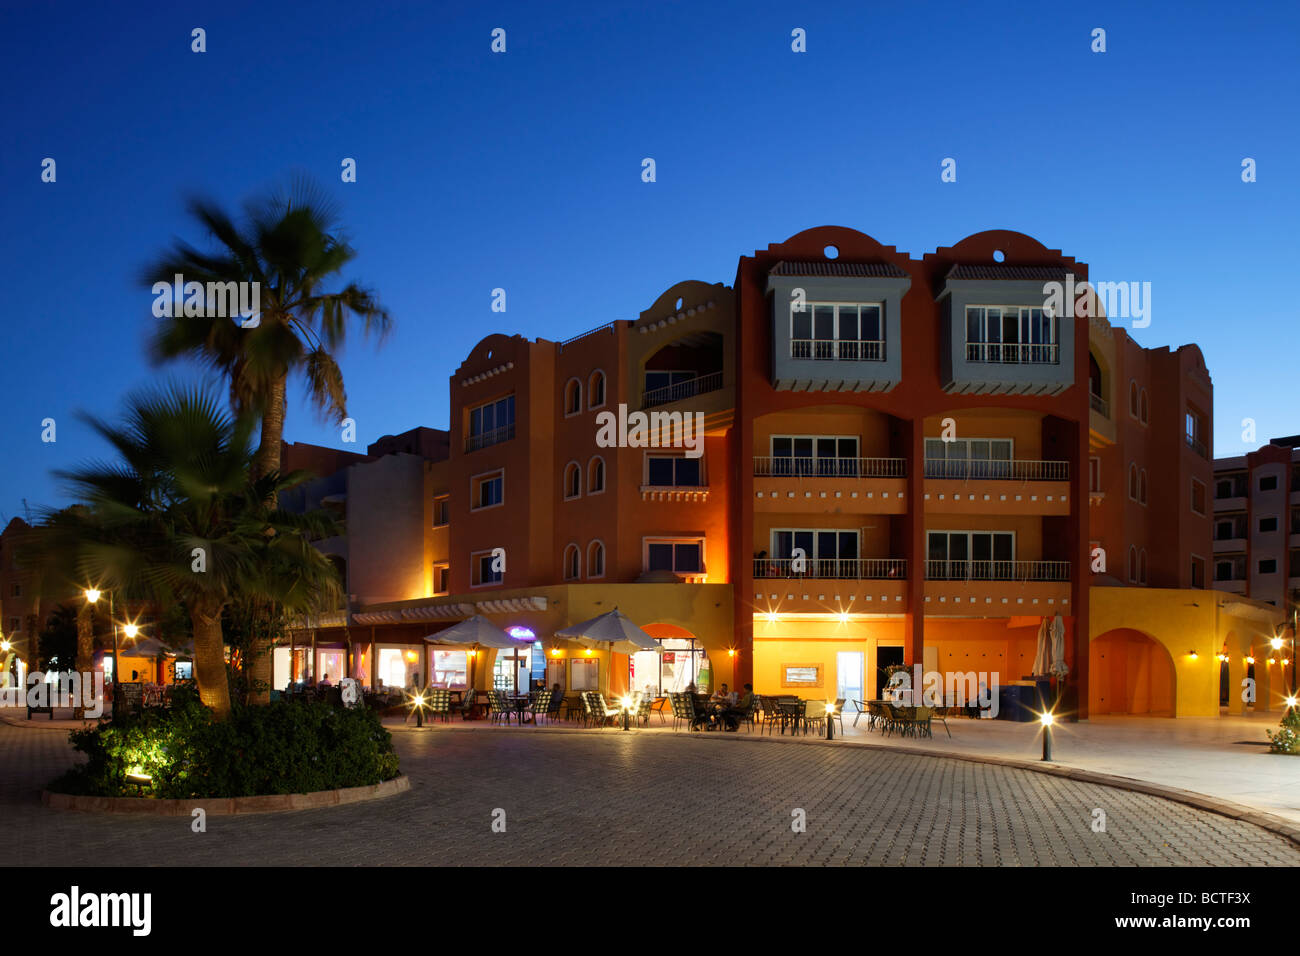 Houses with pubs, illuminated, evening, marina, Hurghada, Egypt, Red Sea, Africa - Stock Image